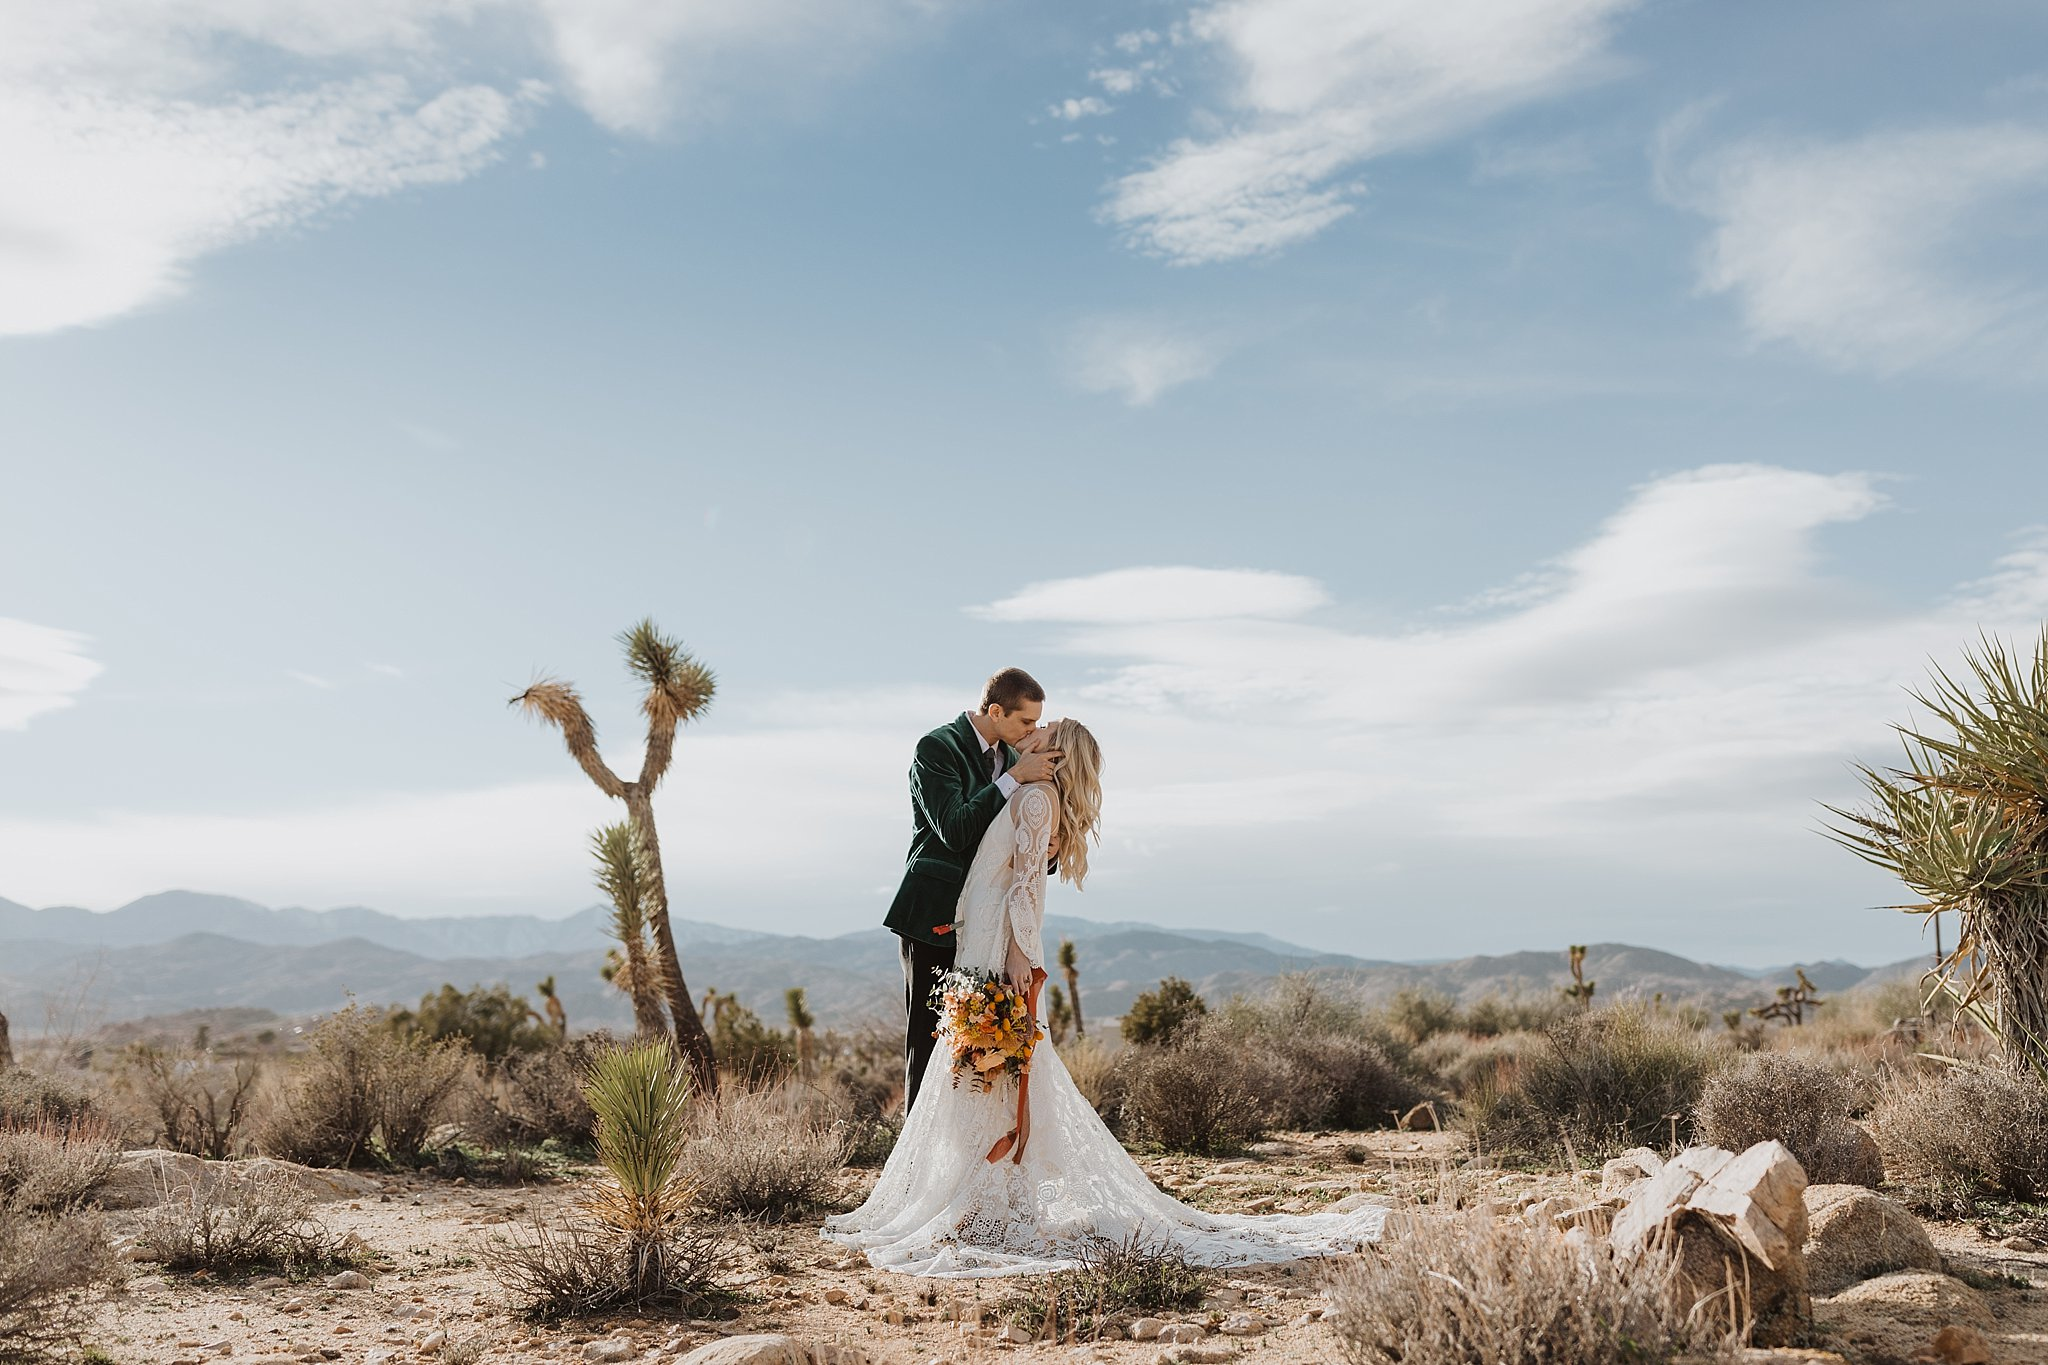 Meg's Marvels Photography - Joshua Tree Elopement California Wedding_0177.jpg